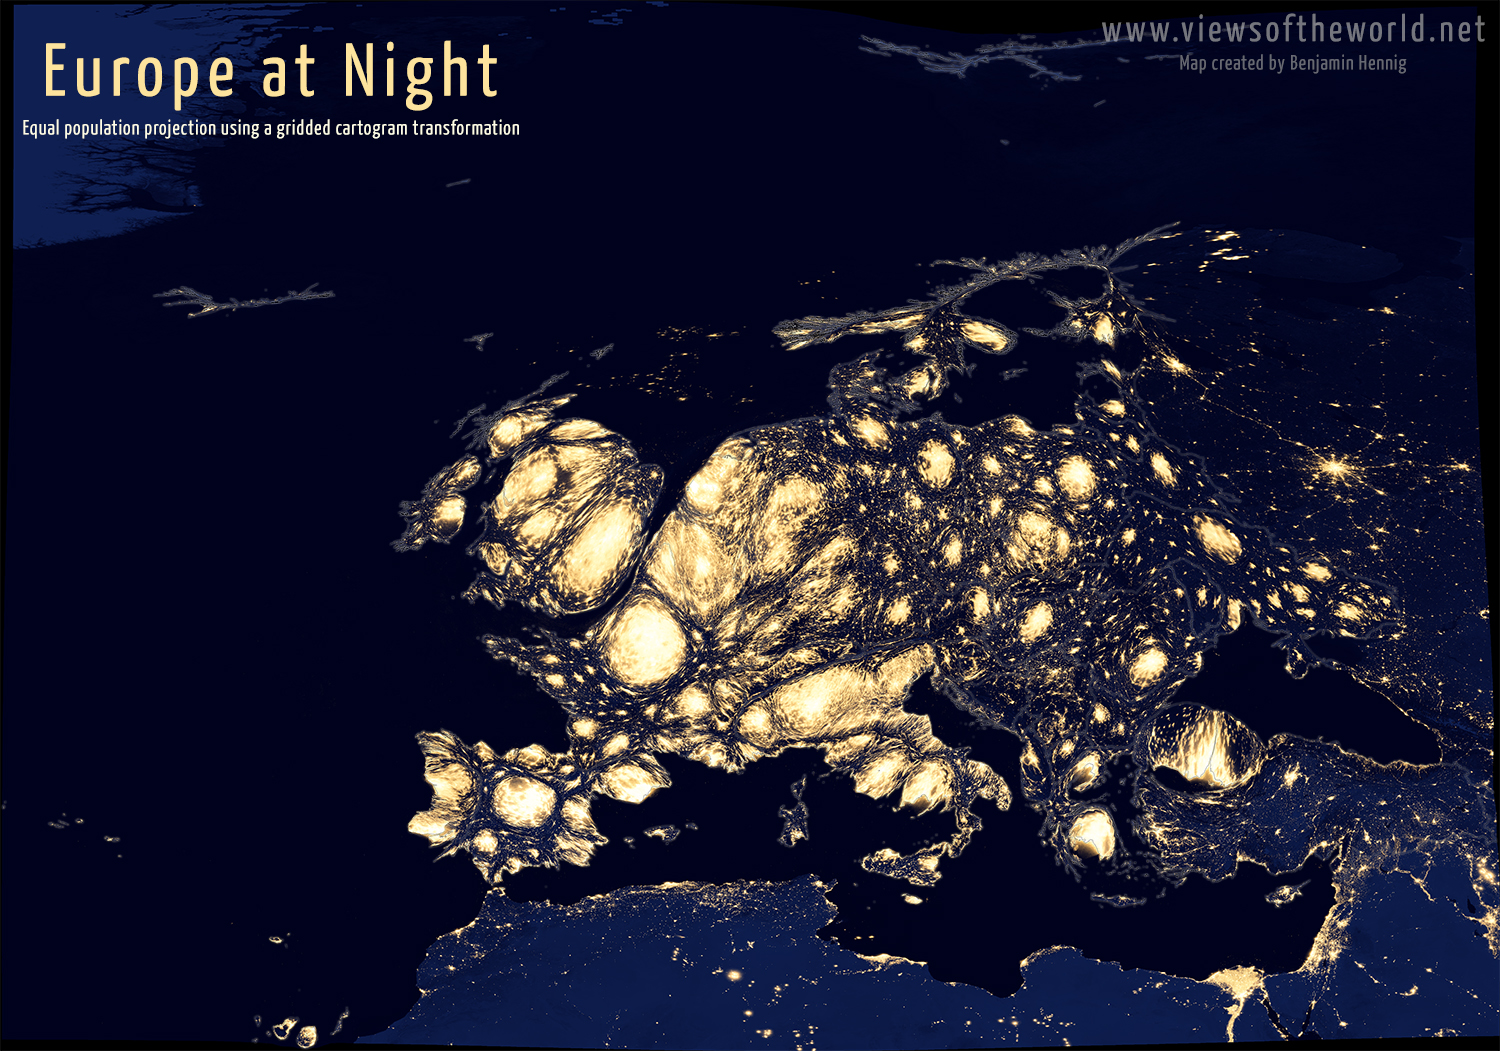 Night archives views of the world equal population projection map of europe at night gumiabroncs Image collections